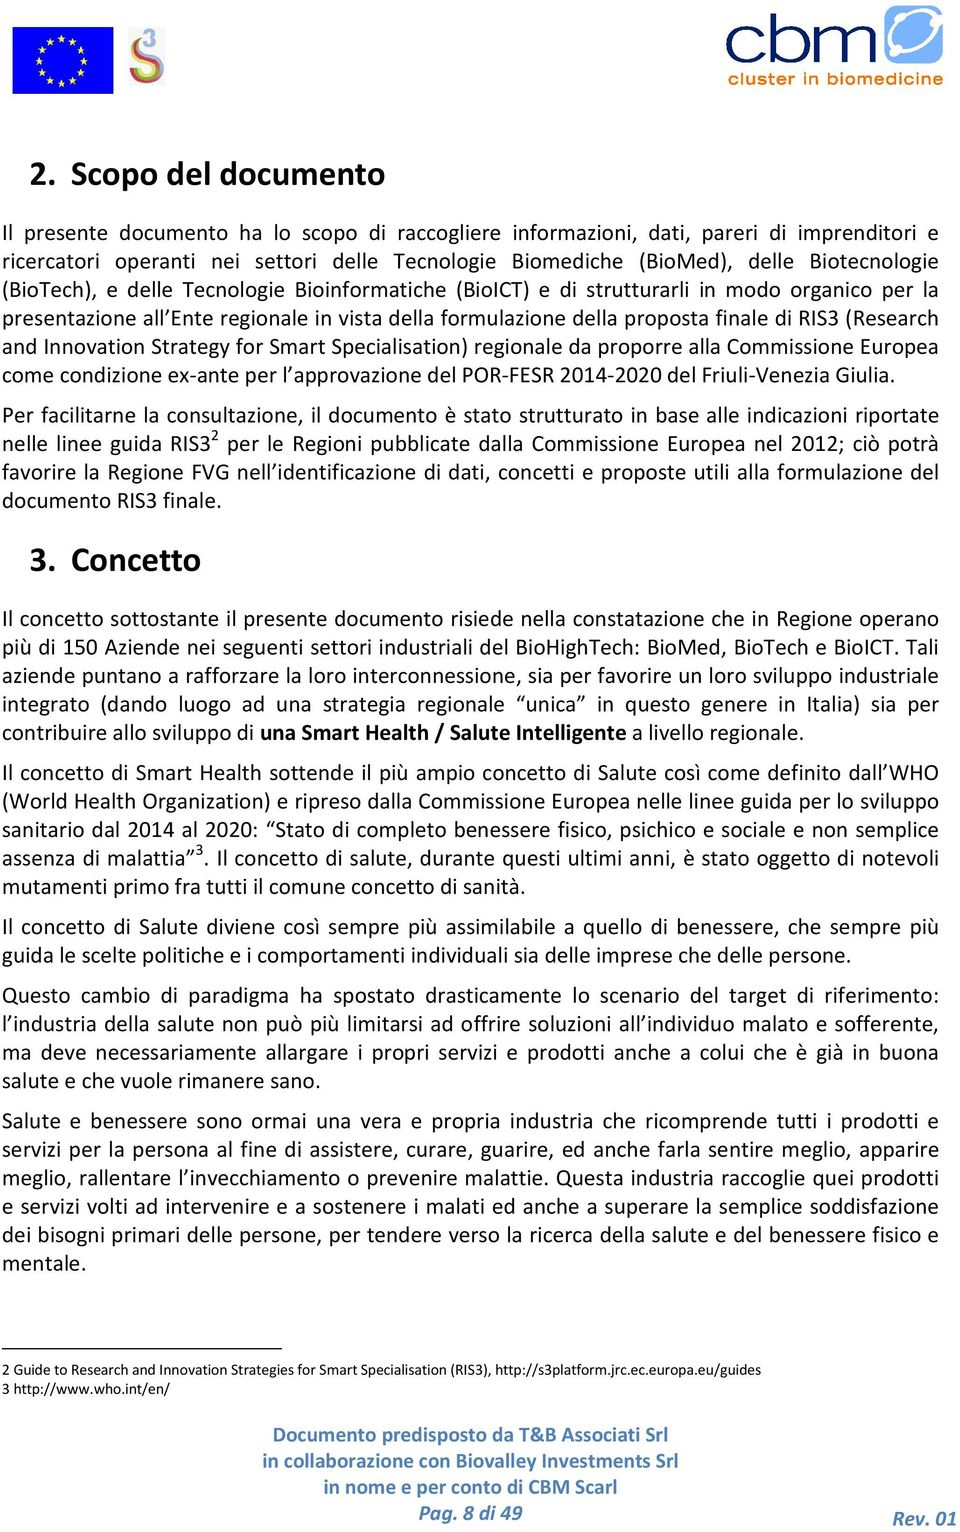 RIS3 (Research and Innovation Strategy for Smart Specialisation) regionale da proporre alla Commissione Europea come condizione ex-ante per l approvazione del POR-FESR 2014-20202020 del